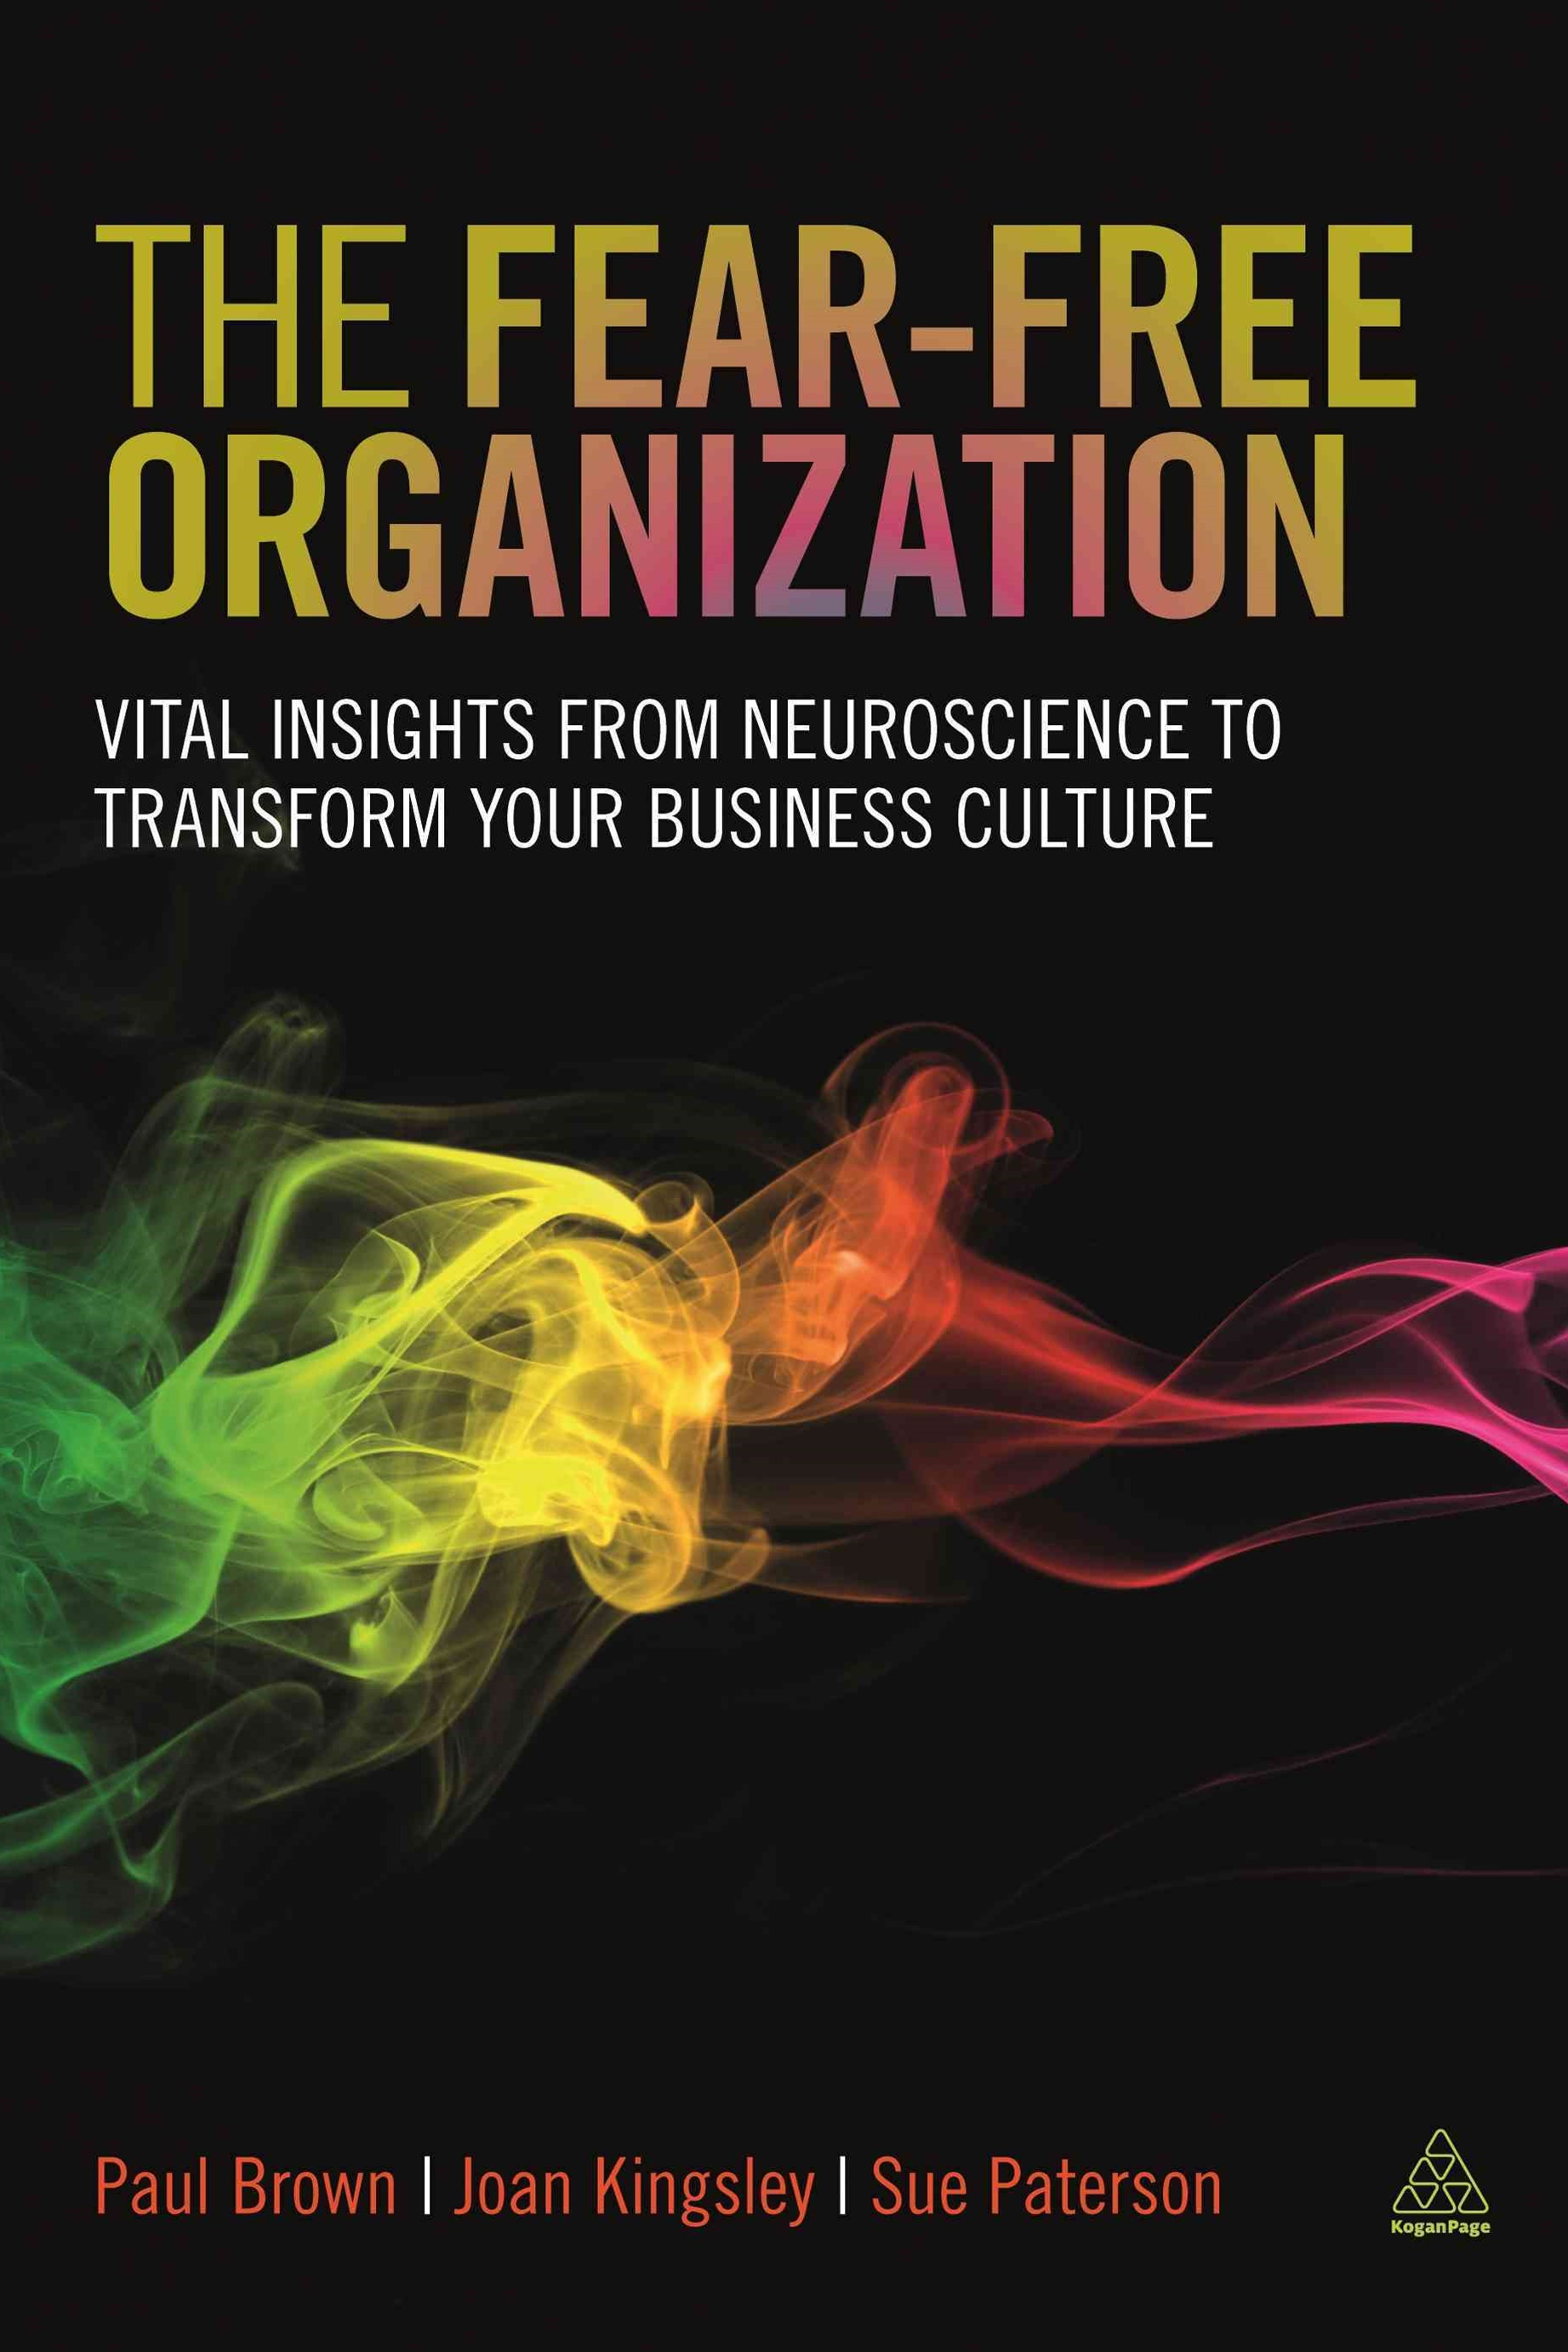 Neuroscience and the Fear-Free Organization